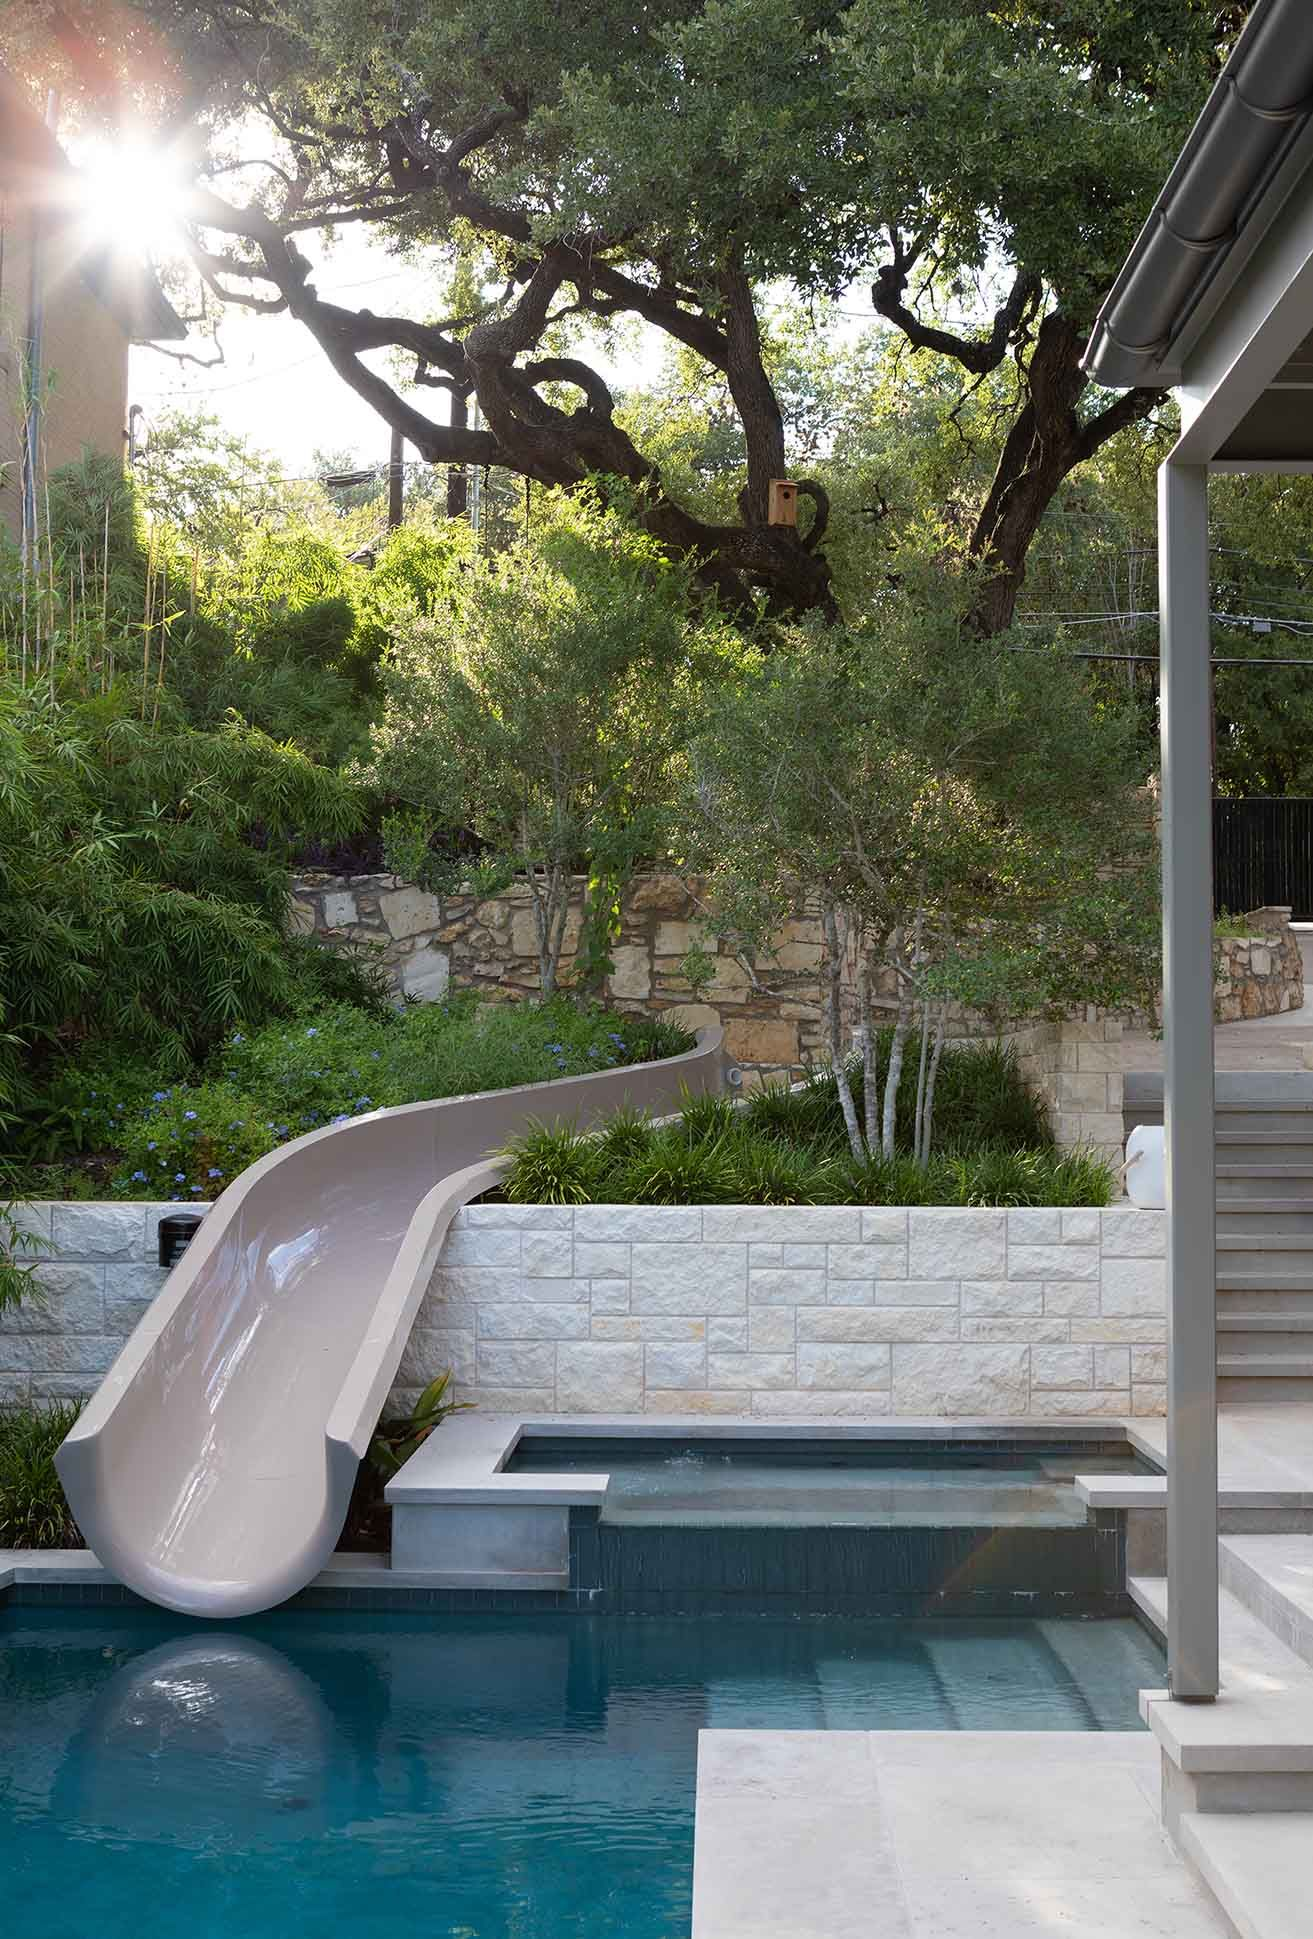 Backyard Pool and Garden Architect in Austin, TX